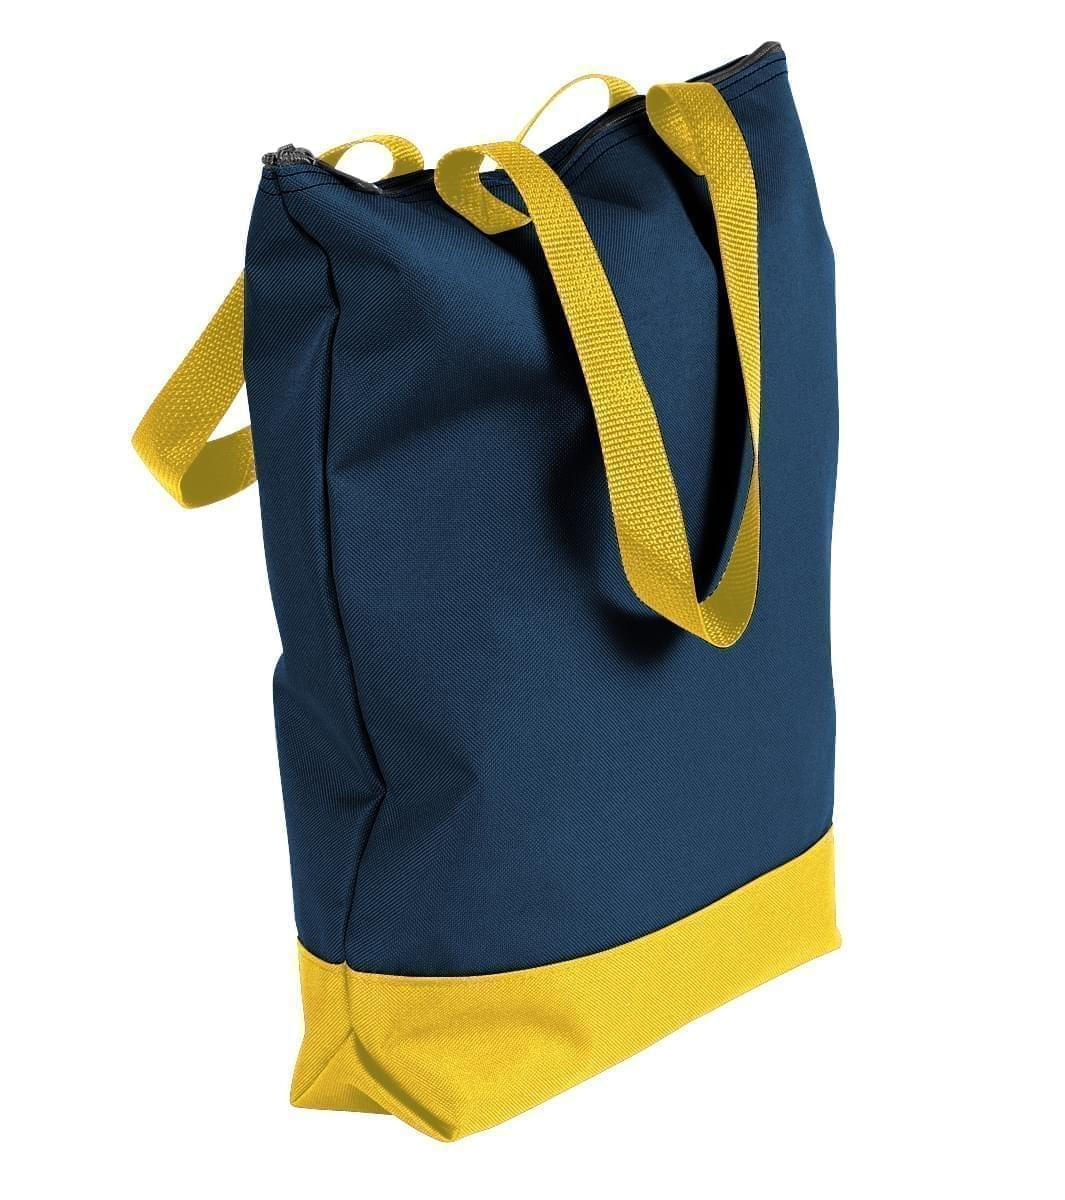 USA Made Canvas Portfolio Tote Bags, Navy-Gold, 1AAMX1UAC5